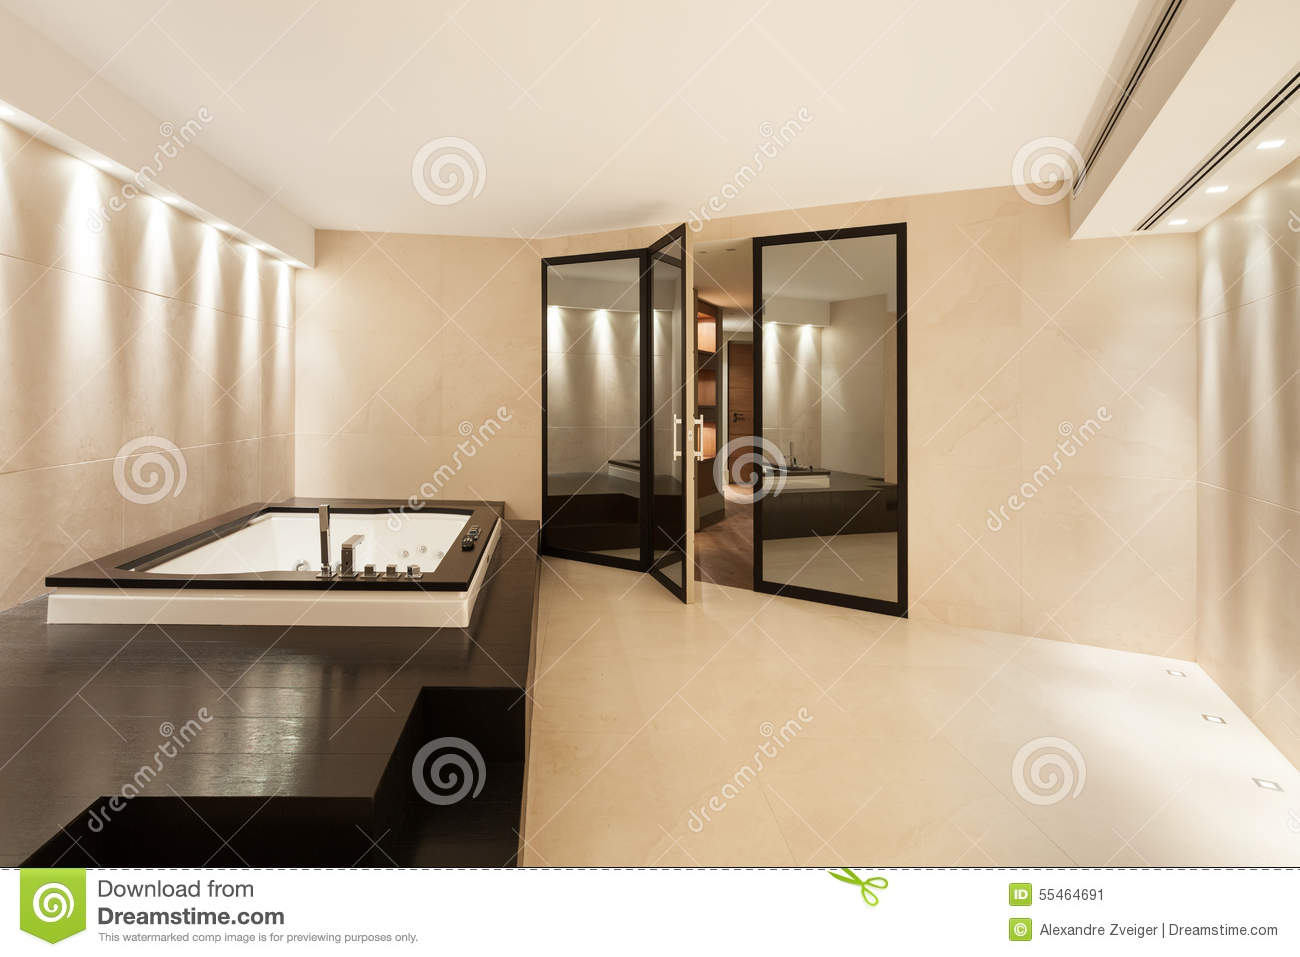 Interiors bathroom with jacuzzi stock image image of marble